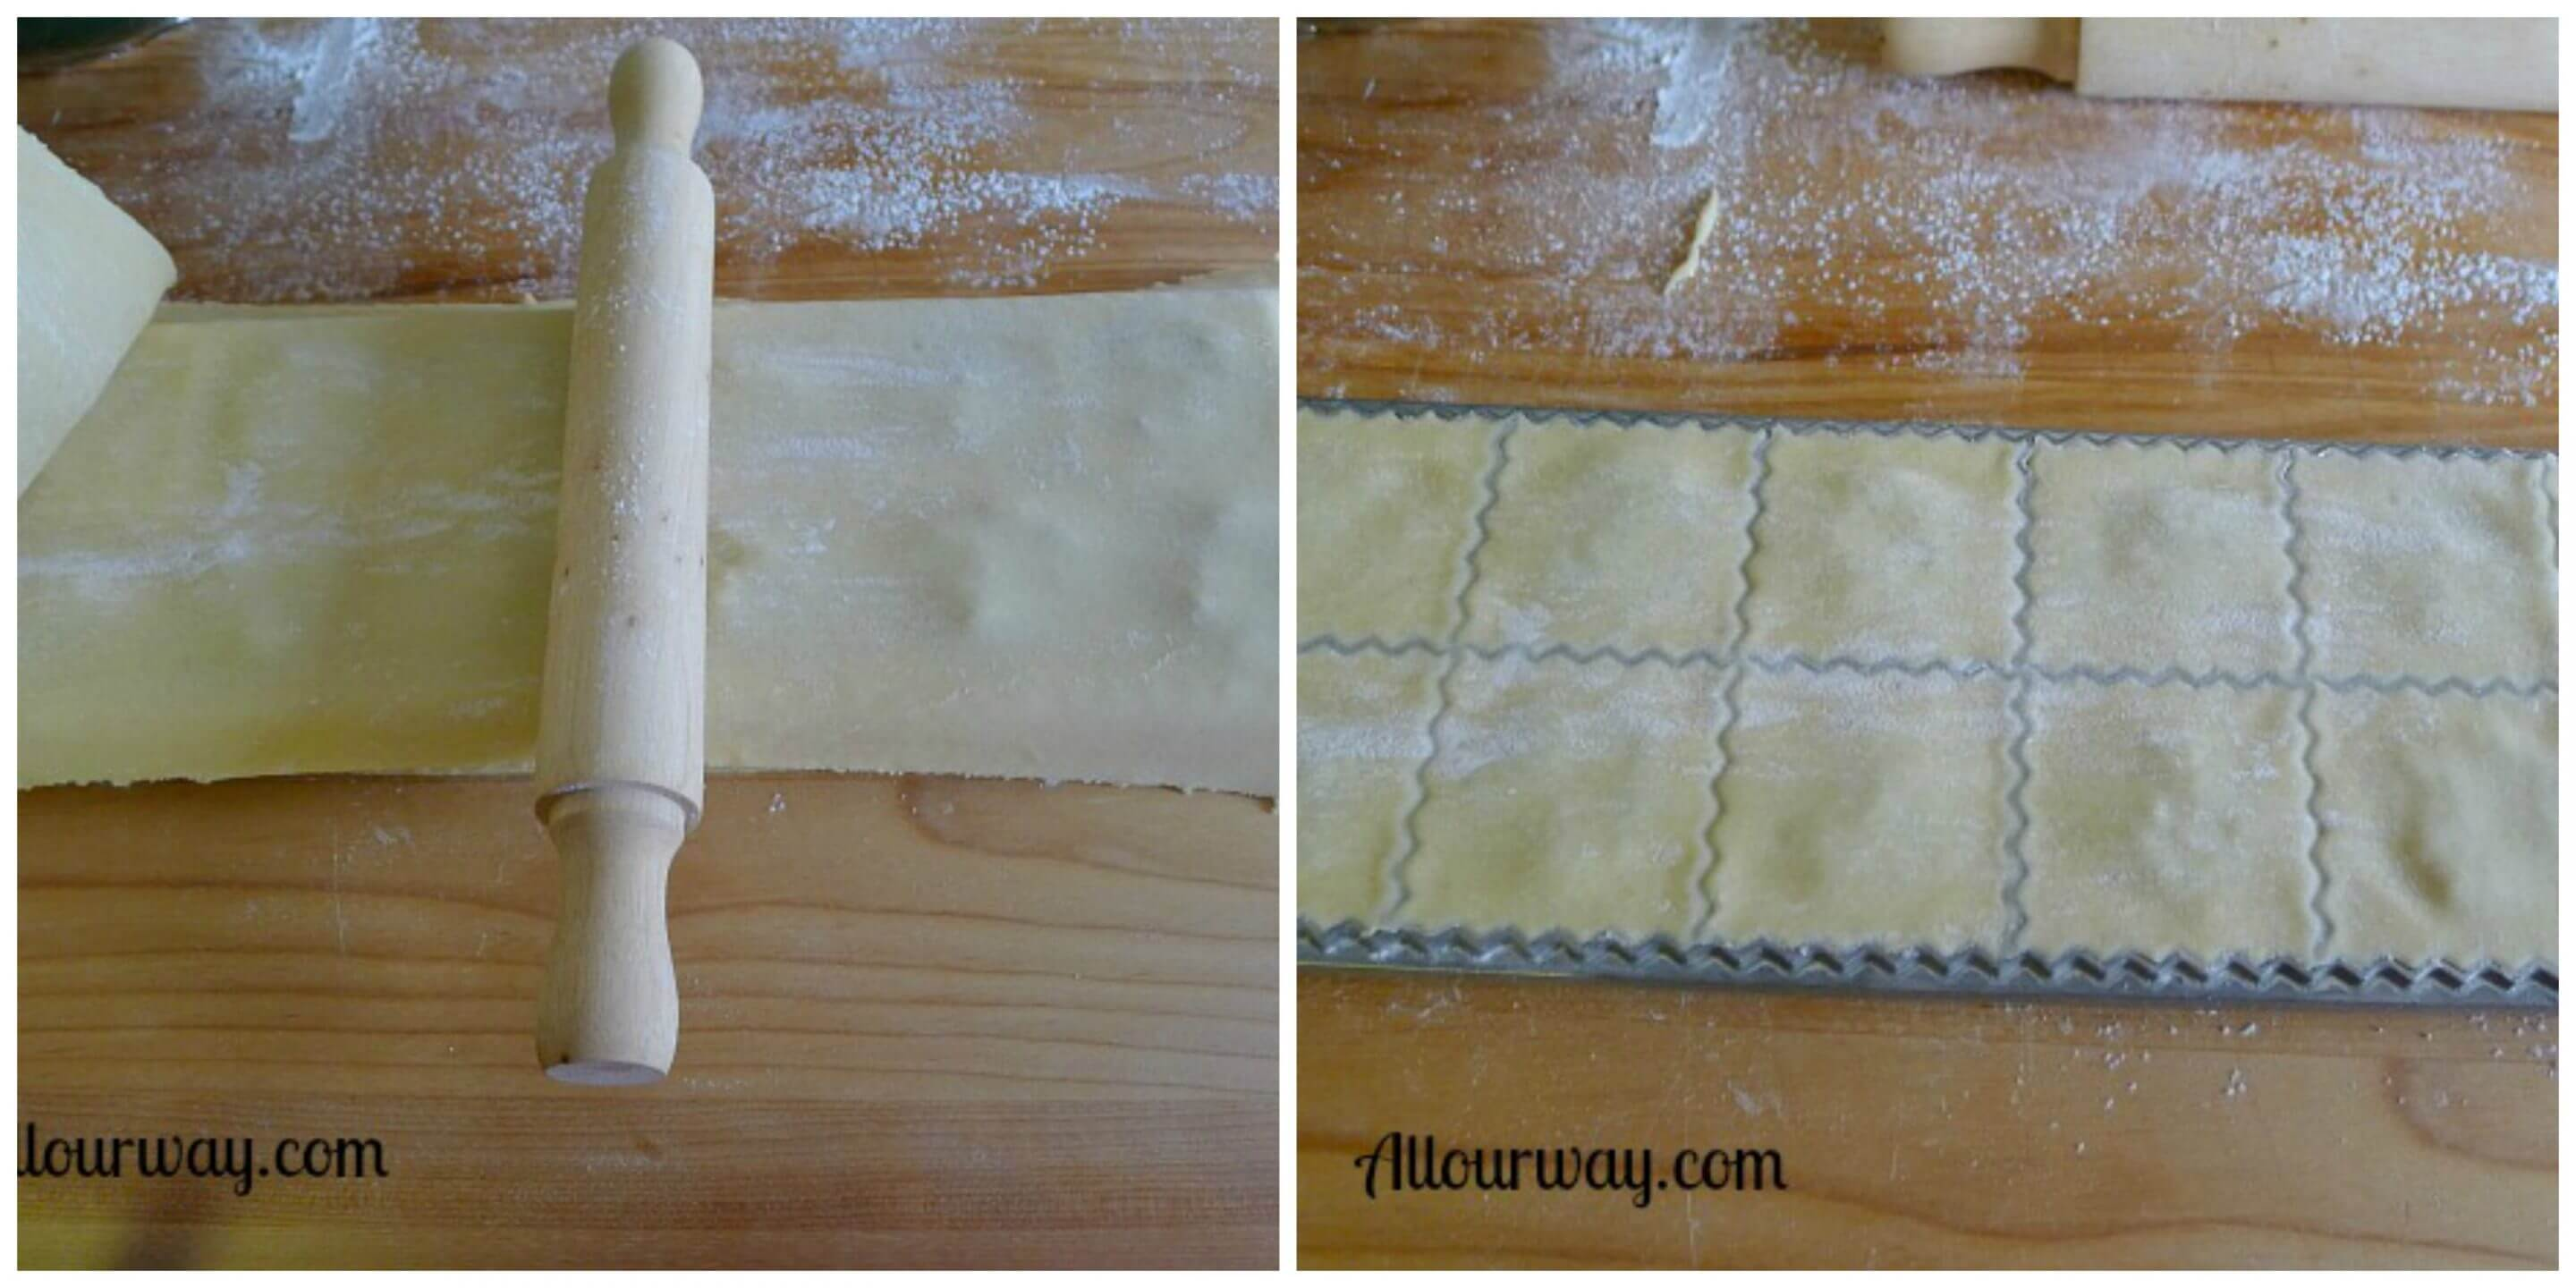 Ravioli rolling pin runs over the dough from center out to seal the edges between the two layers.